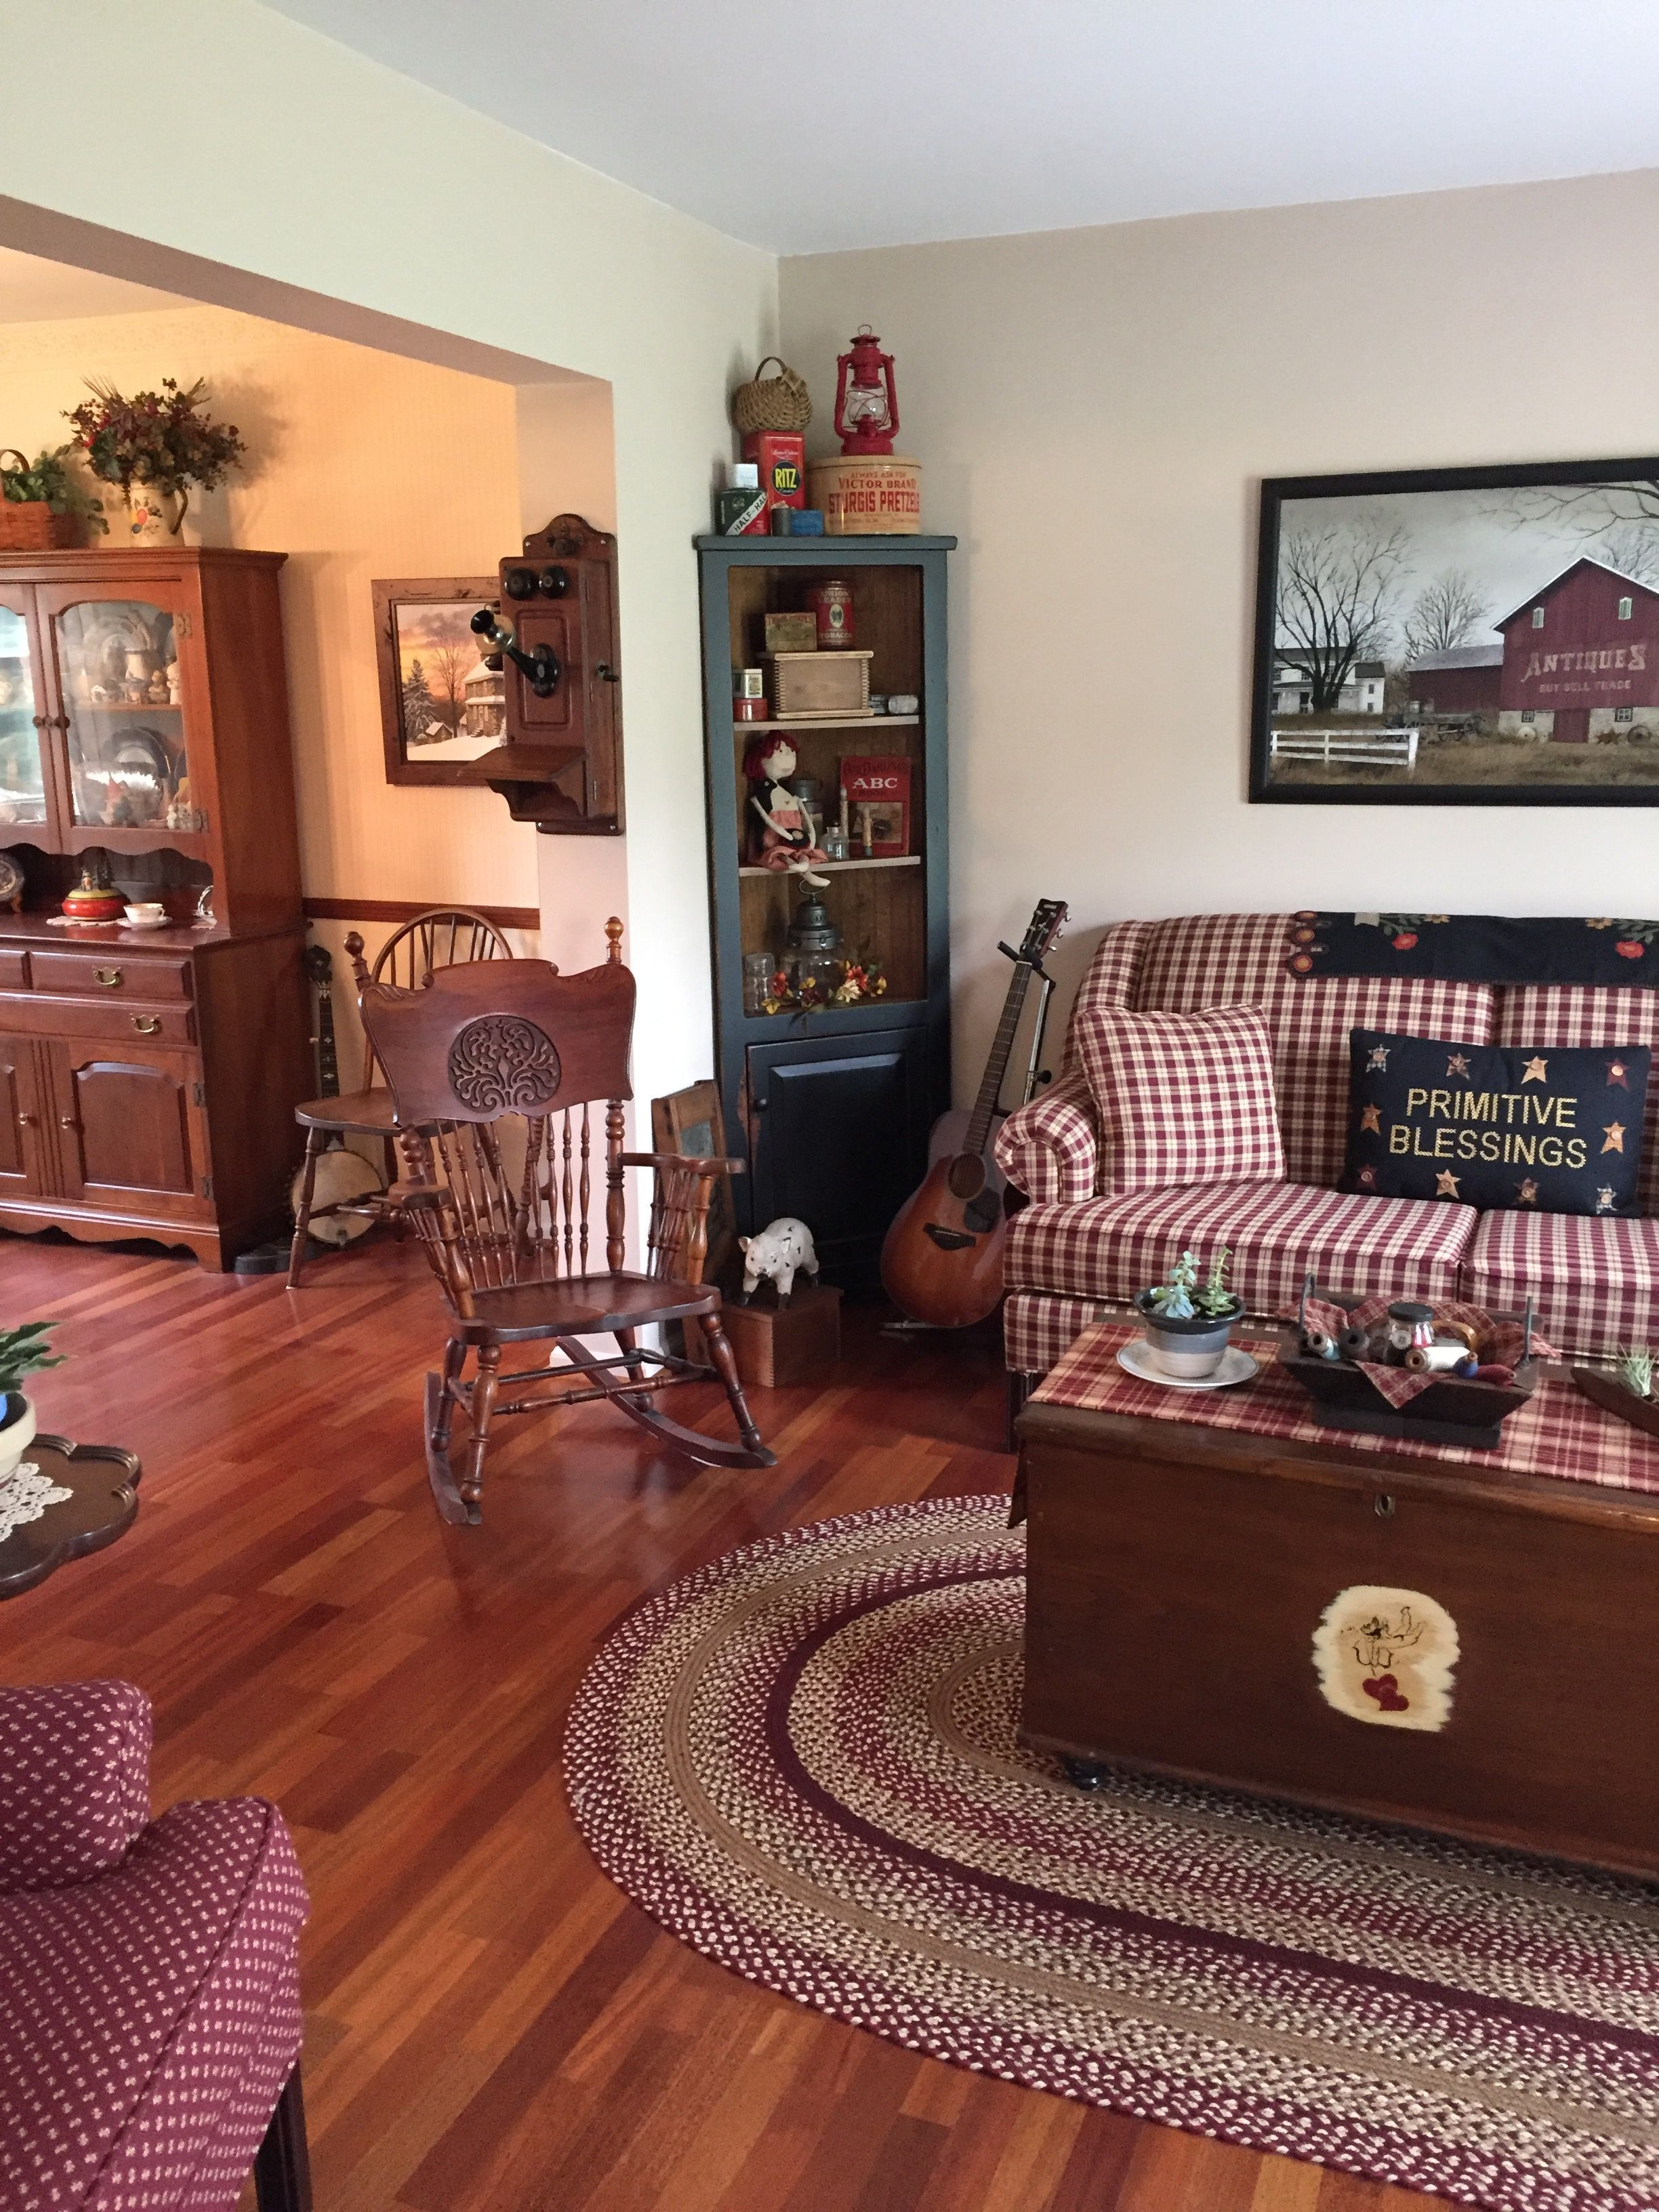 Primitive Living Room Primitive Living Room Primitive Decorating Country Americana Living Rooms Primitive paint colors for living room